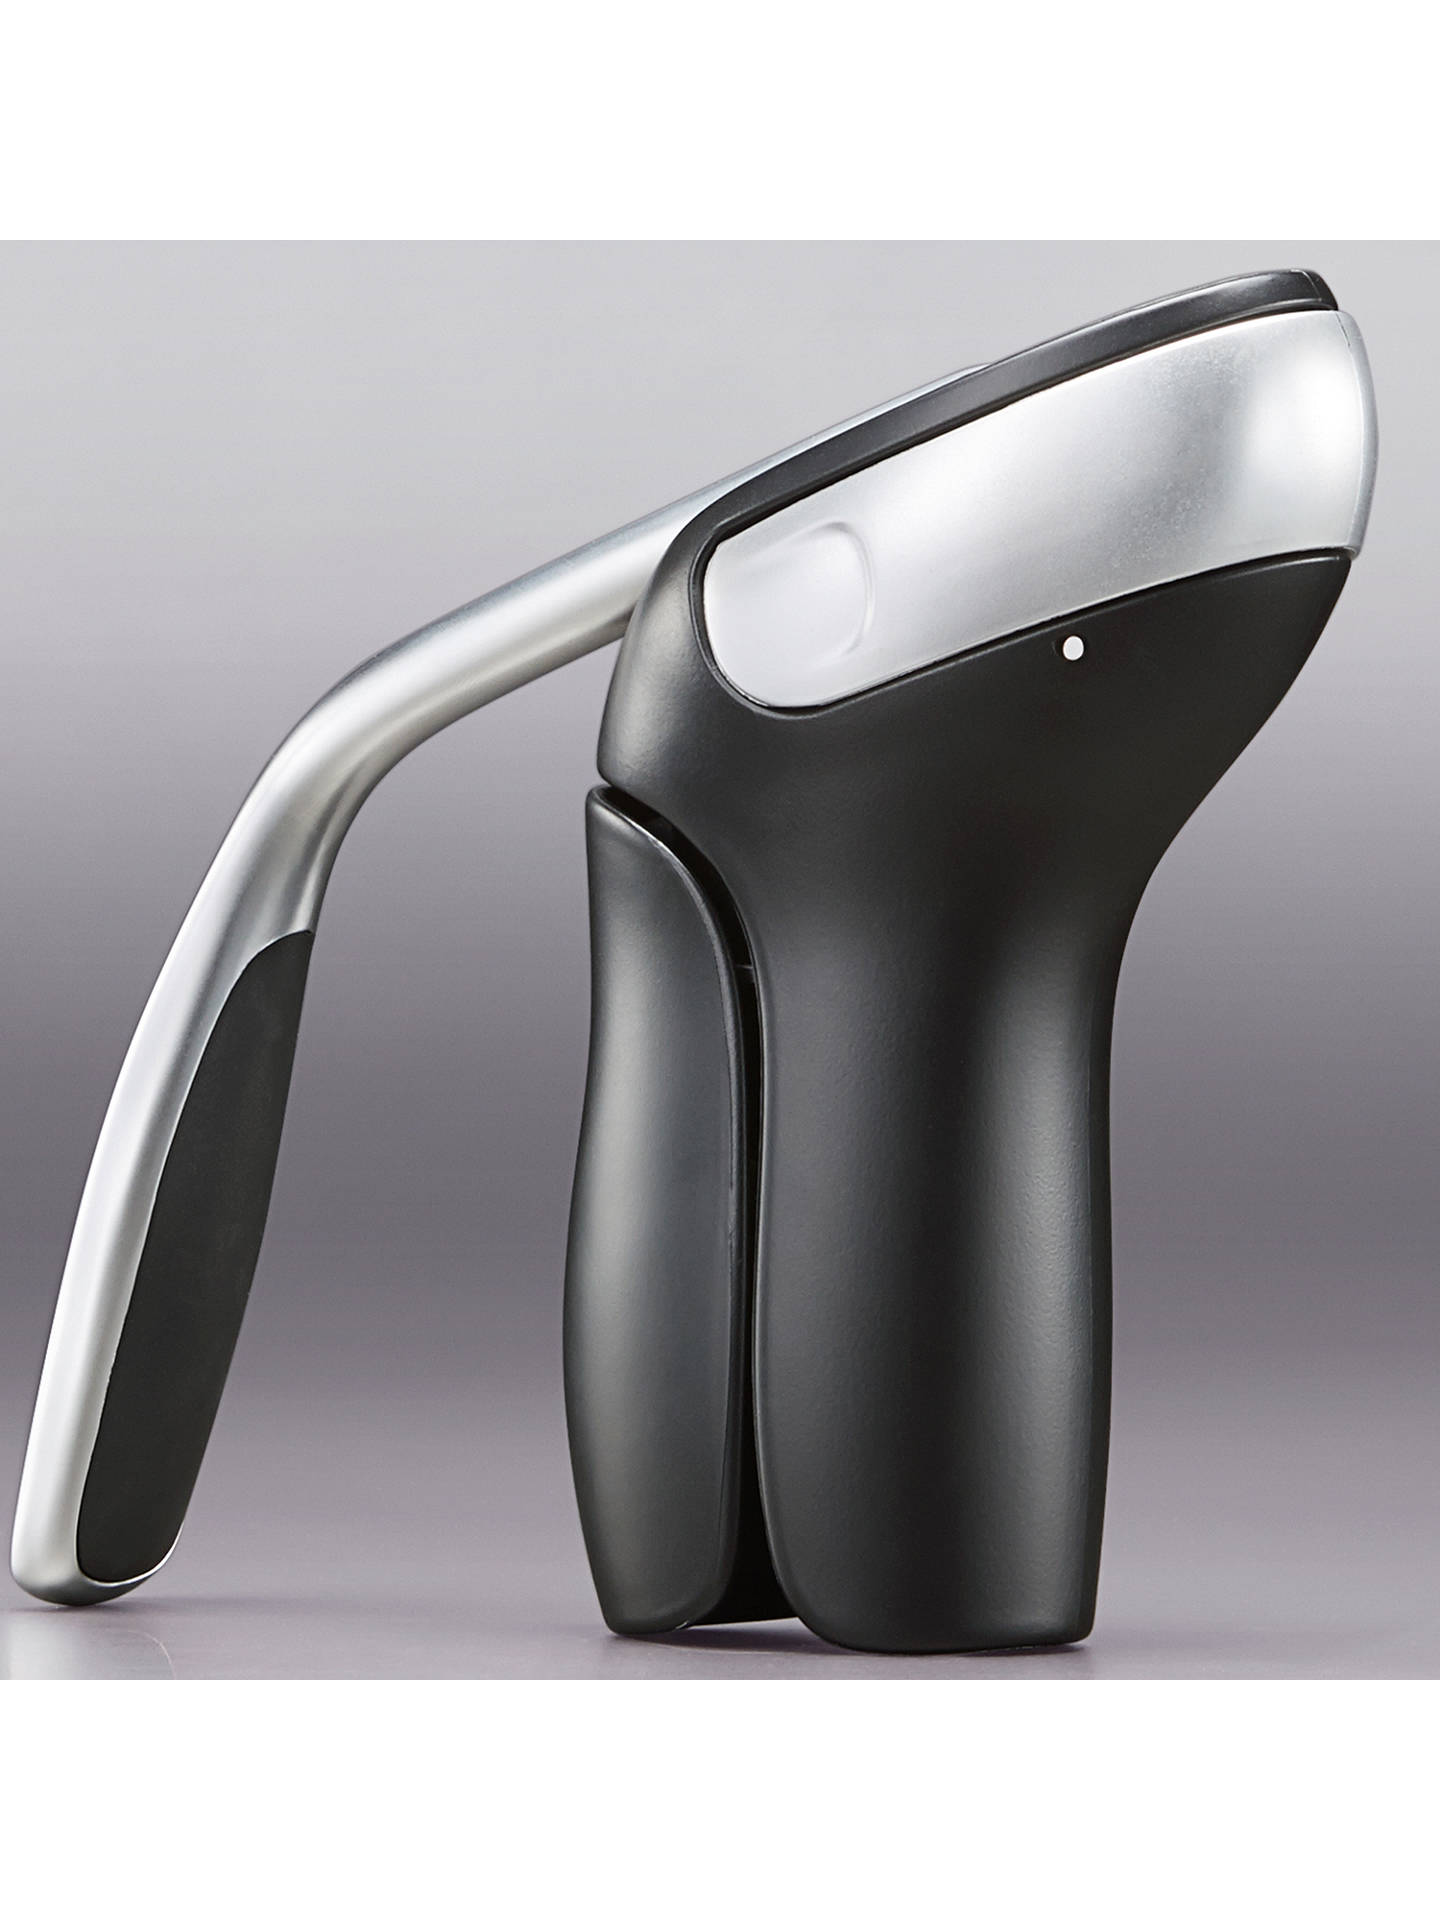 Buy OXO Good Grips Vertical Lever Corkscrew Online at johnlewis.com